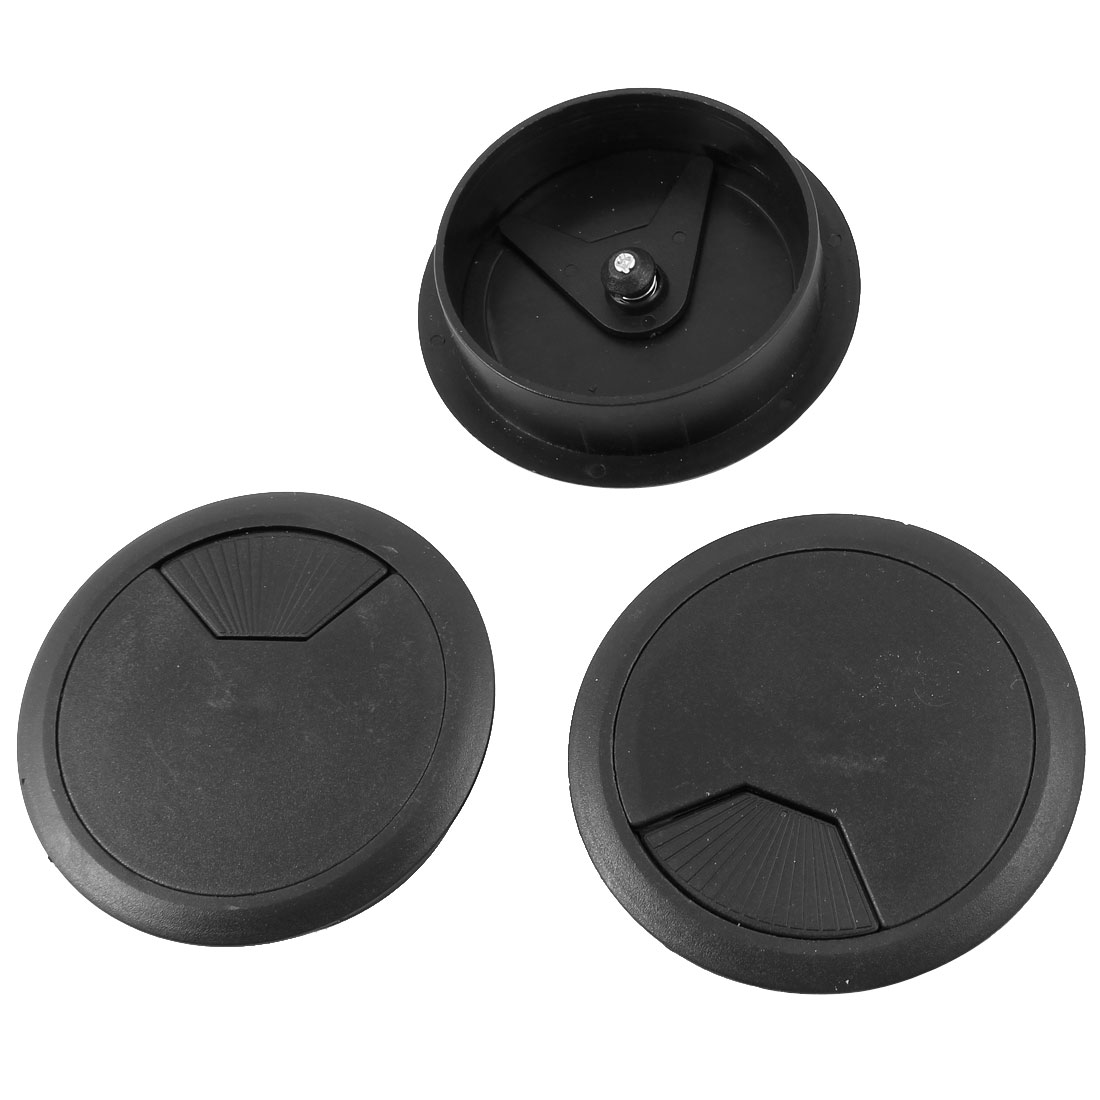 Plastic Desktop Computer 80mm Grommet Cable Hole Cover Black 3 Pcs